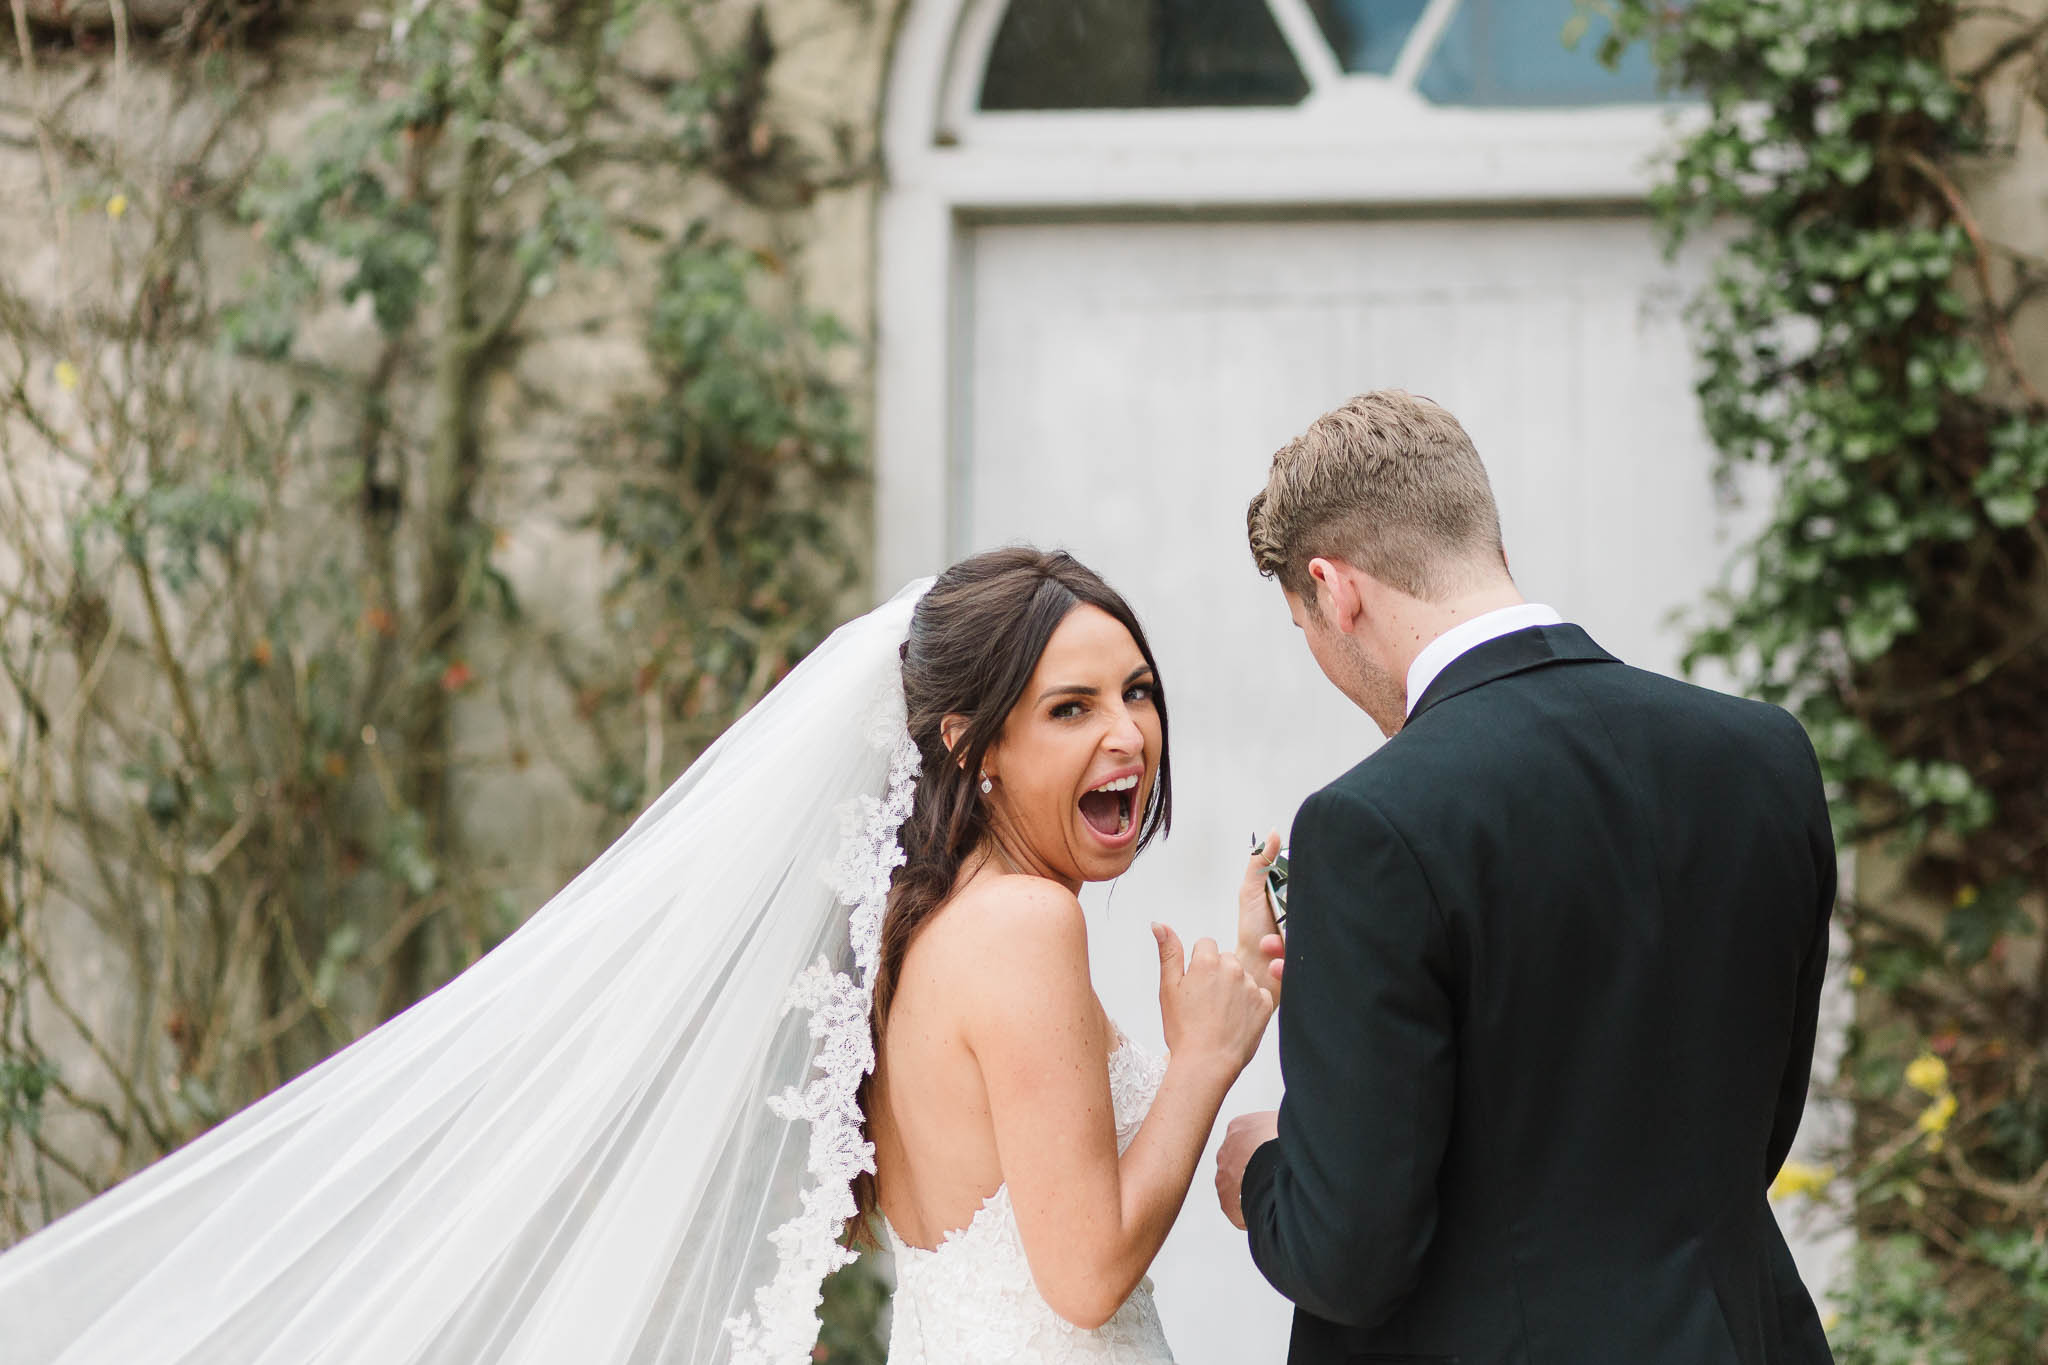 bride excited at photo on phone